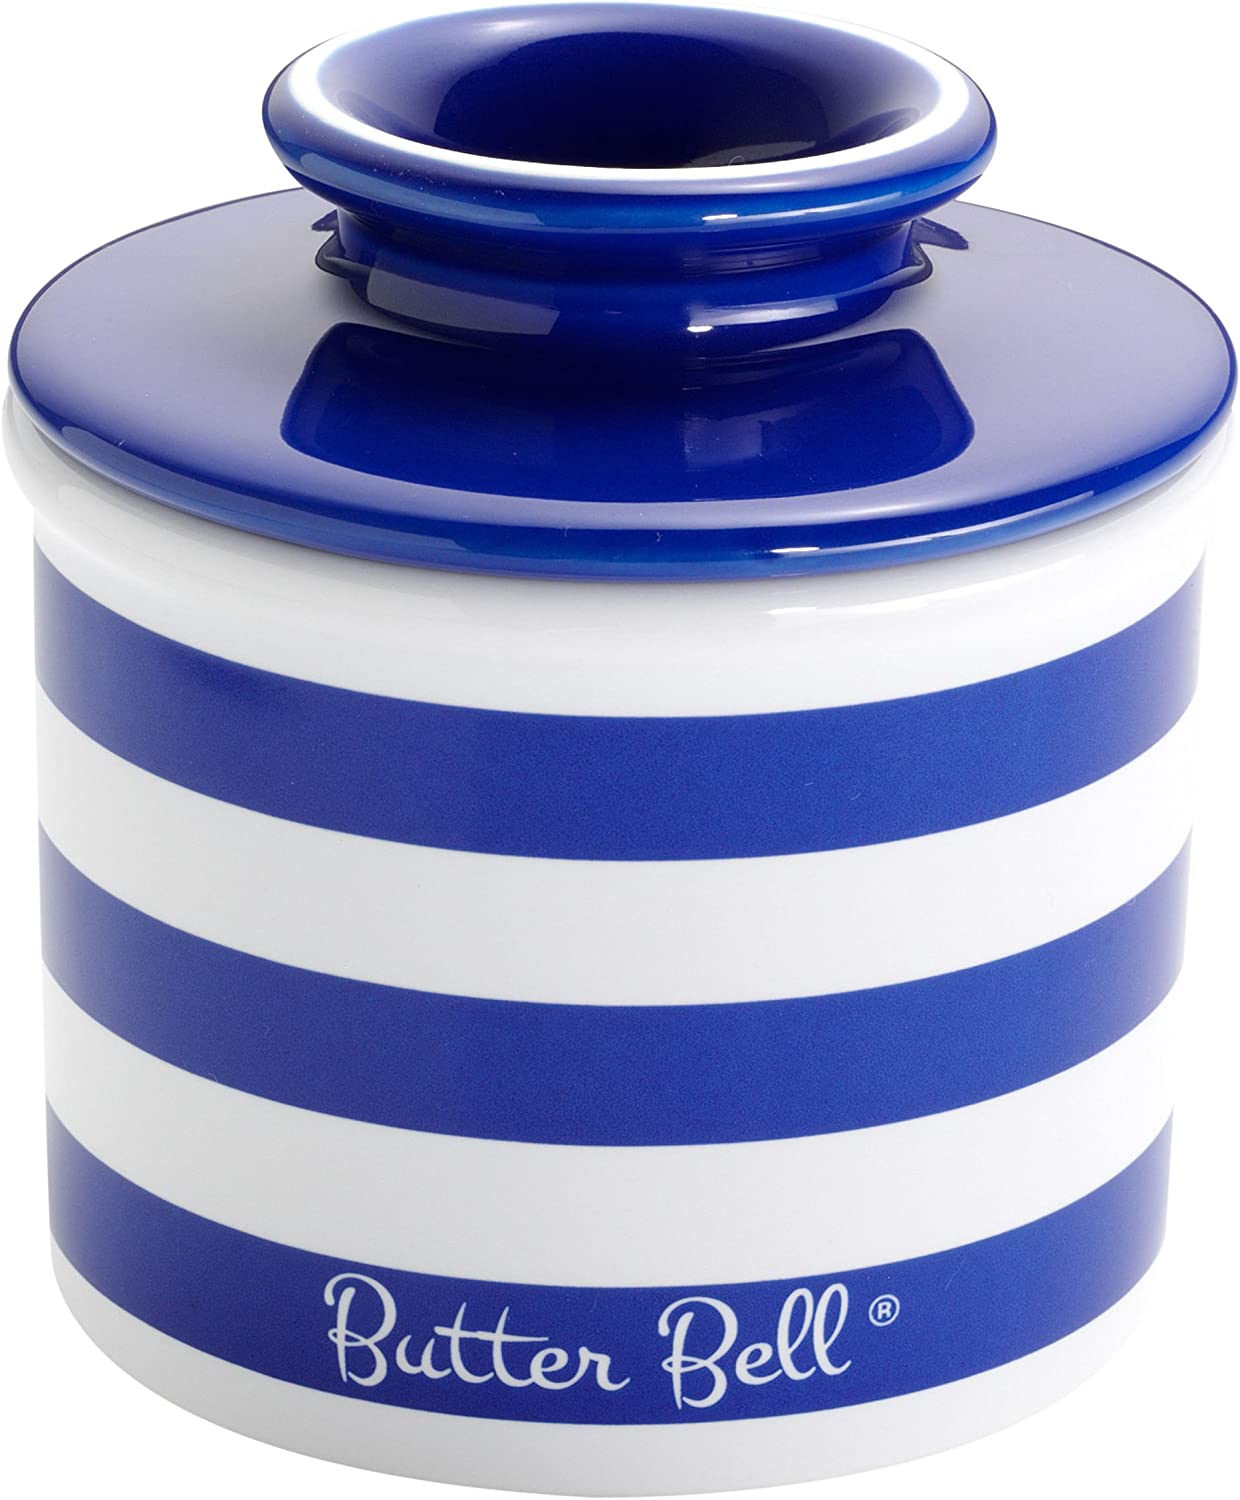 Butter Bell Royal Blue The Original Butter Bell Crock and Petit Bell Gift Set by L French Ceramic Butter Dishes Tremain